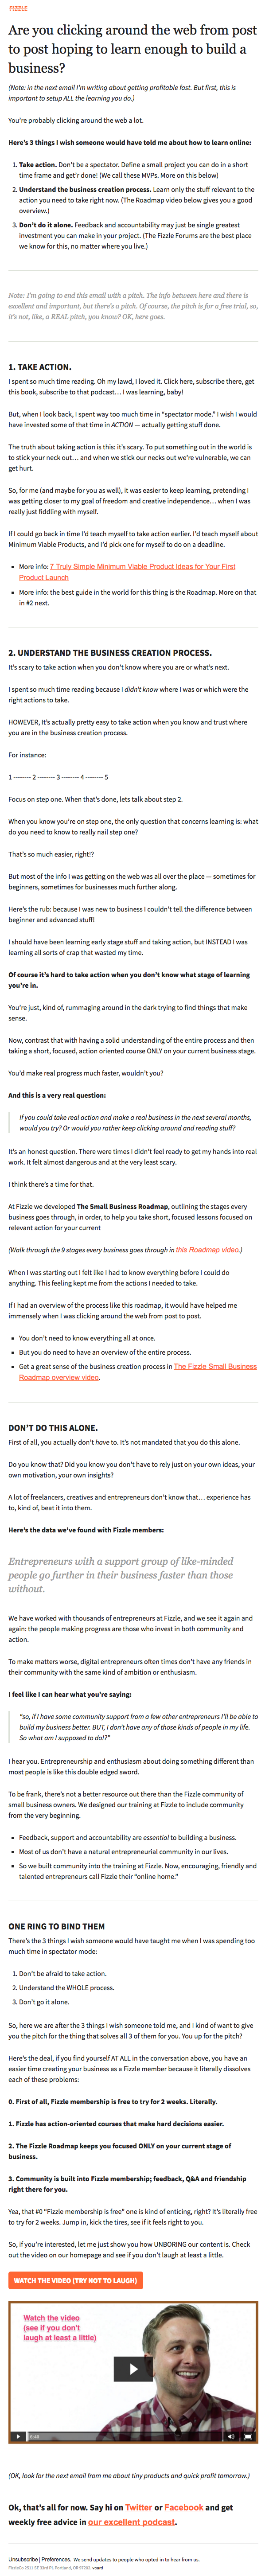 fizzle-newsletter-example.png